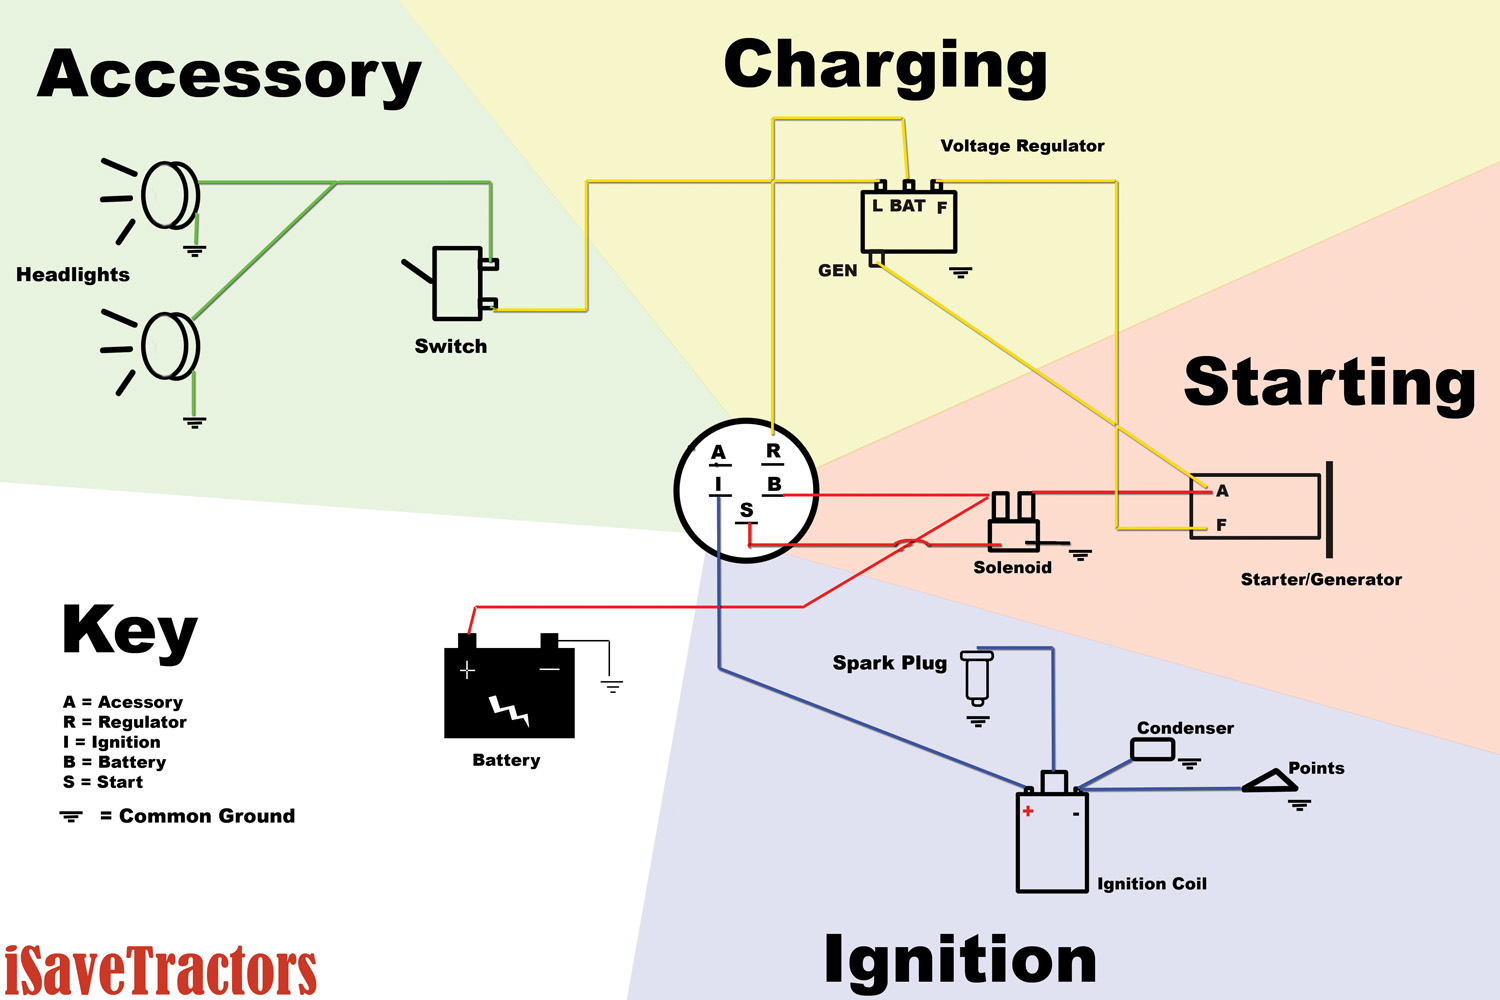 Ignition Switch Wiring Diagram: Wiring Diagram for Garden Tractors with a Delco Remy Starter ,Design